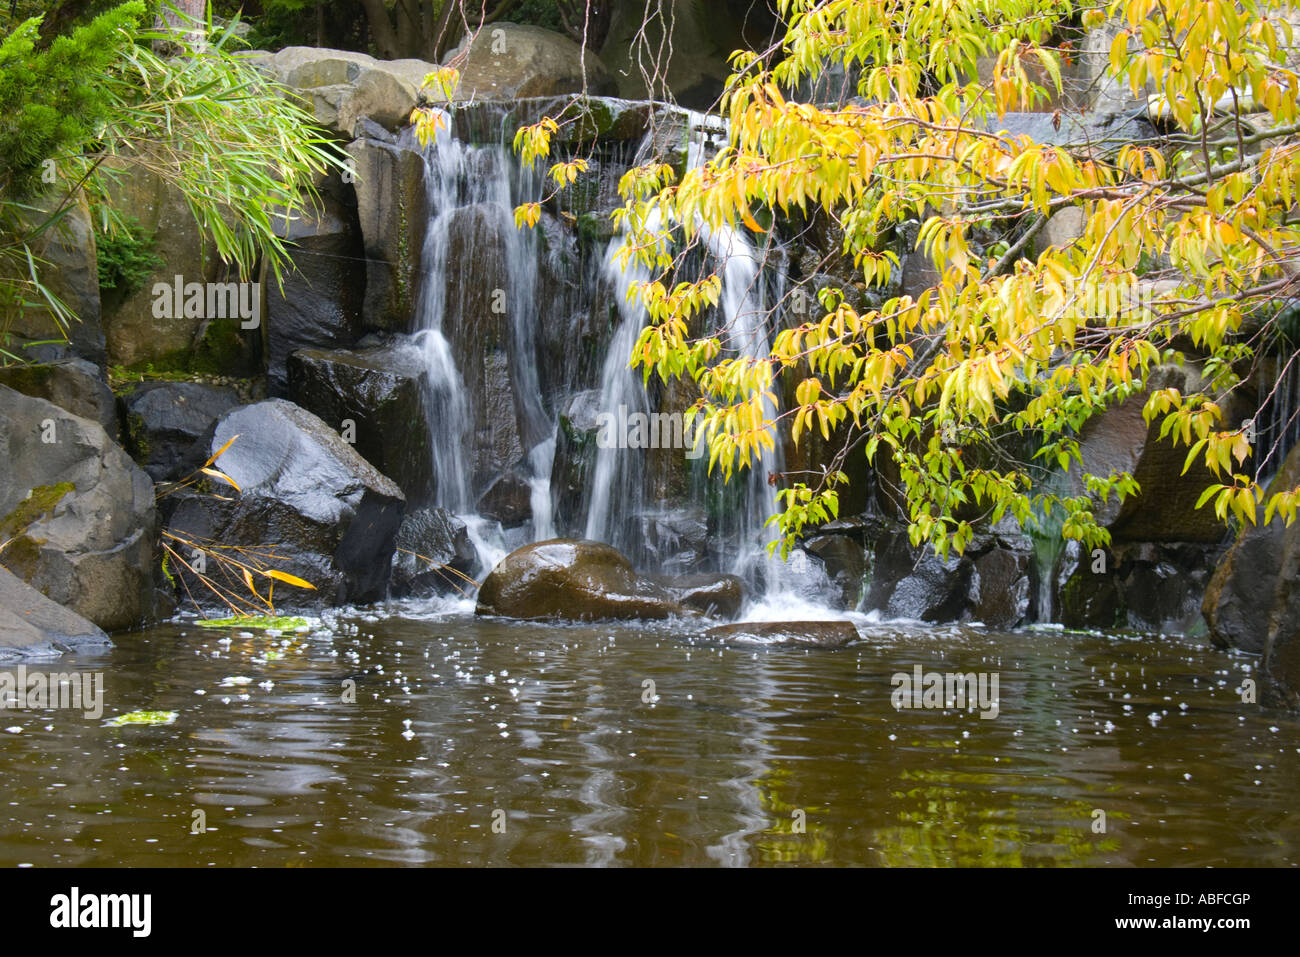 Small waterfall in Japanese Garden - Stock Image